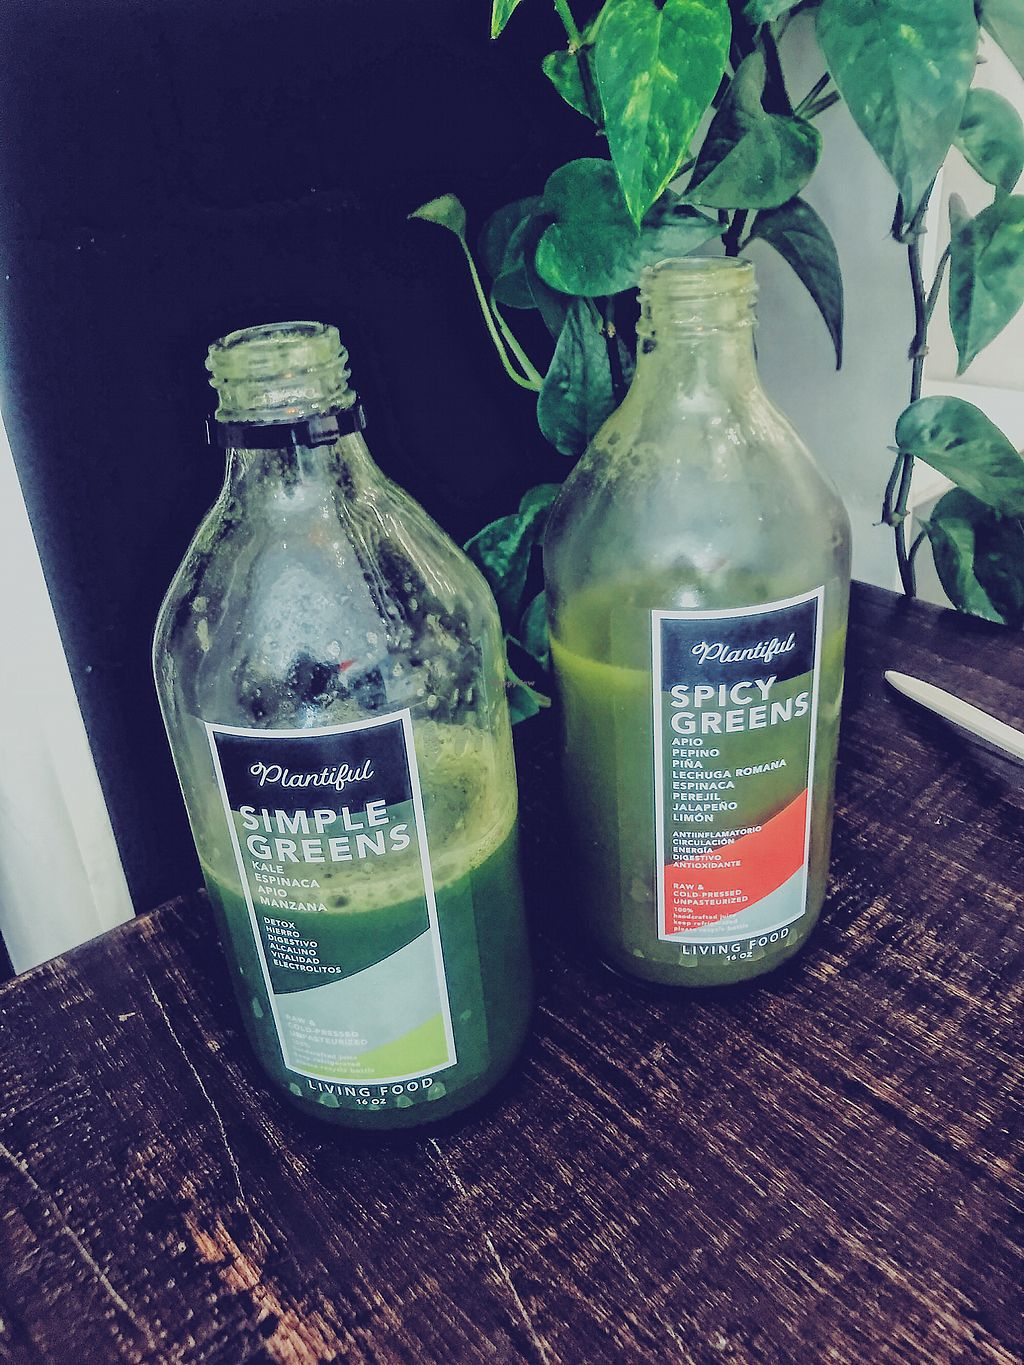 """Photo of Plantiful  by <a href=""""/members/profile/IndreArbataityte"""">IndreArbataityte</a> <br/>Green juices <br/> February 22, 2018  - <a href='/contact/abuse/image/104758/362519'>Report</a>"""